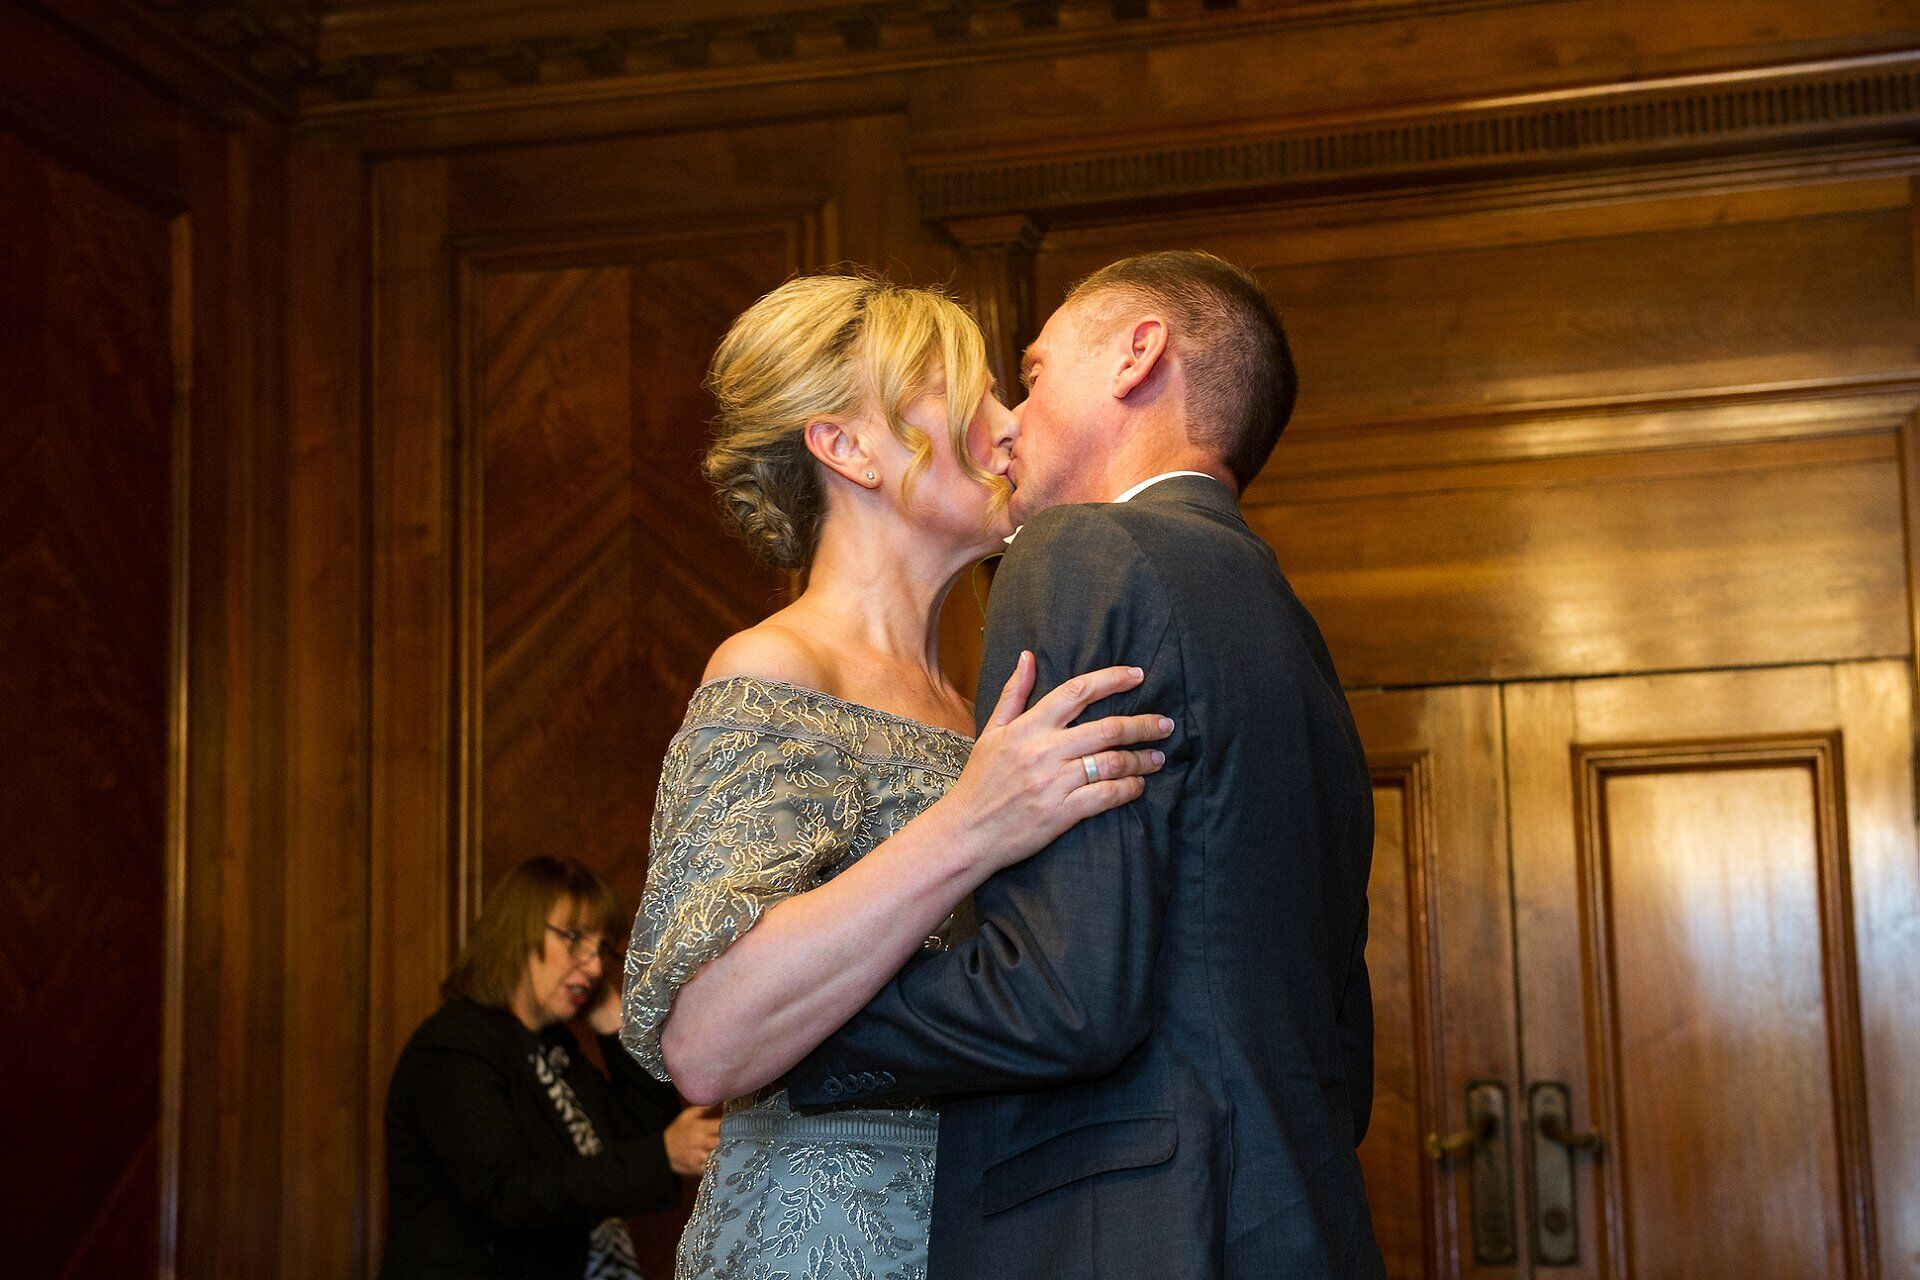 first kiss for brenda and michael as husband and wife in the paddington room at old marylebone town hall